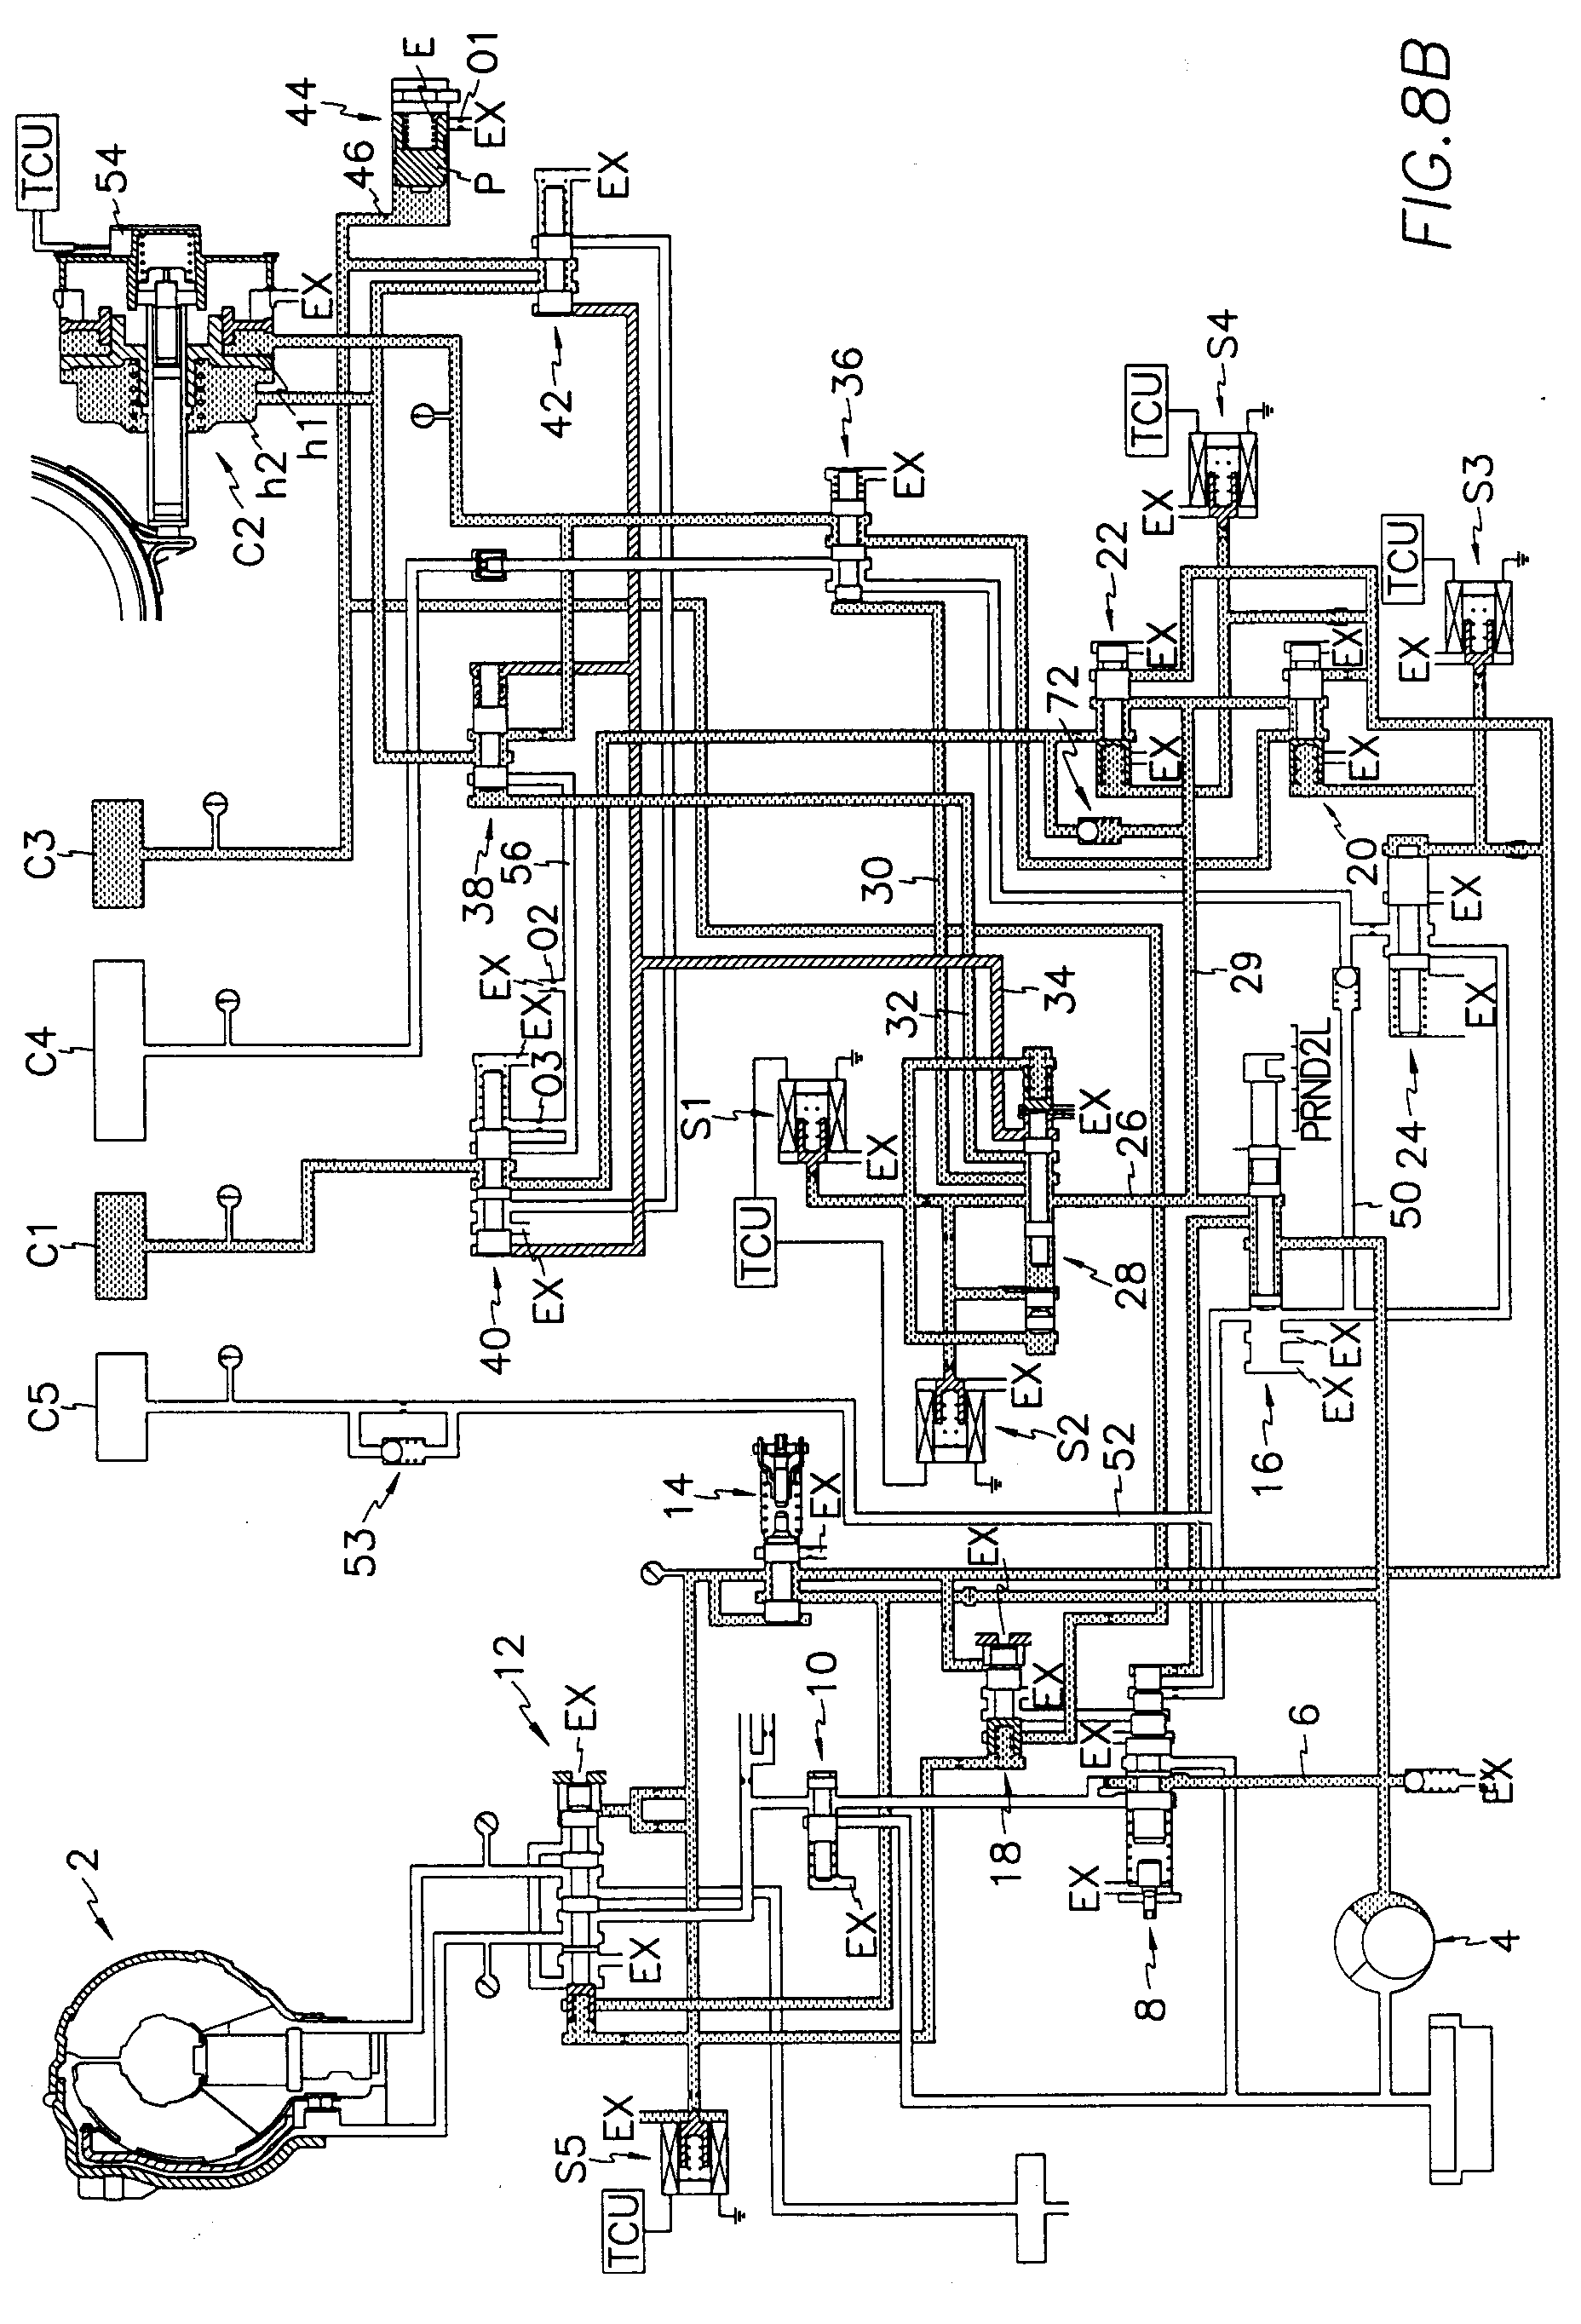 wiring diagram for international truck  u2013 the wiring